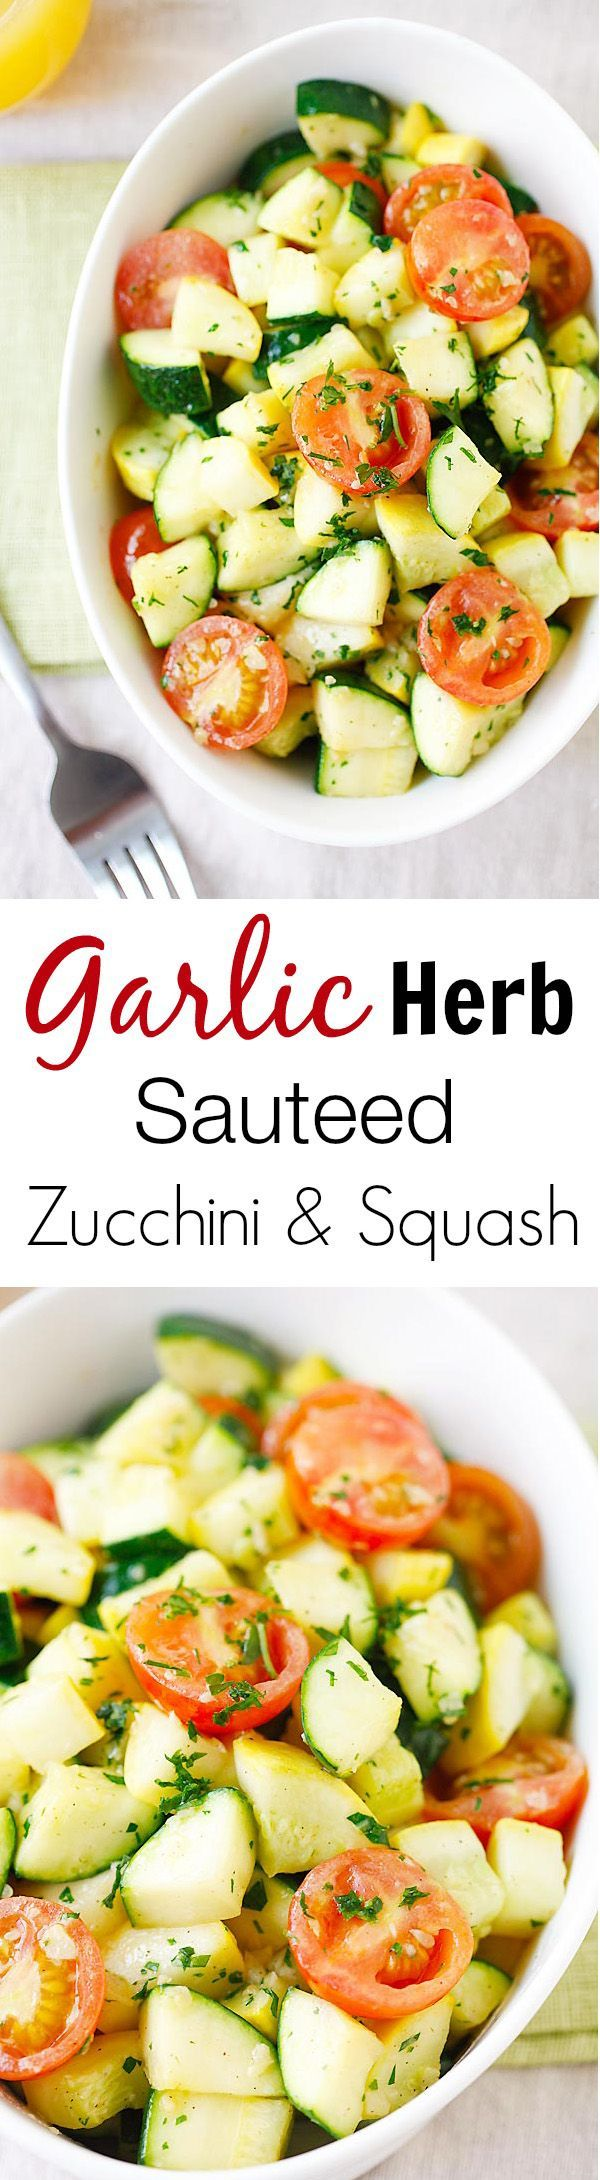 Garlic Herb Sauteed Zucchini and Squash - the healthiest and freshest side dish EVER with zucchini and squash, sauteed with garlic herb butter | rasamalaysia.com